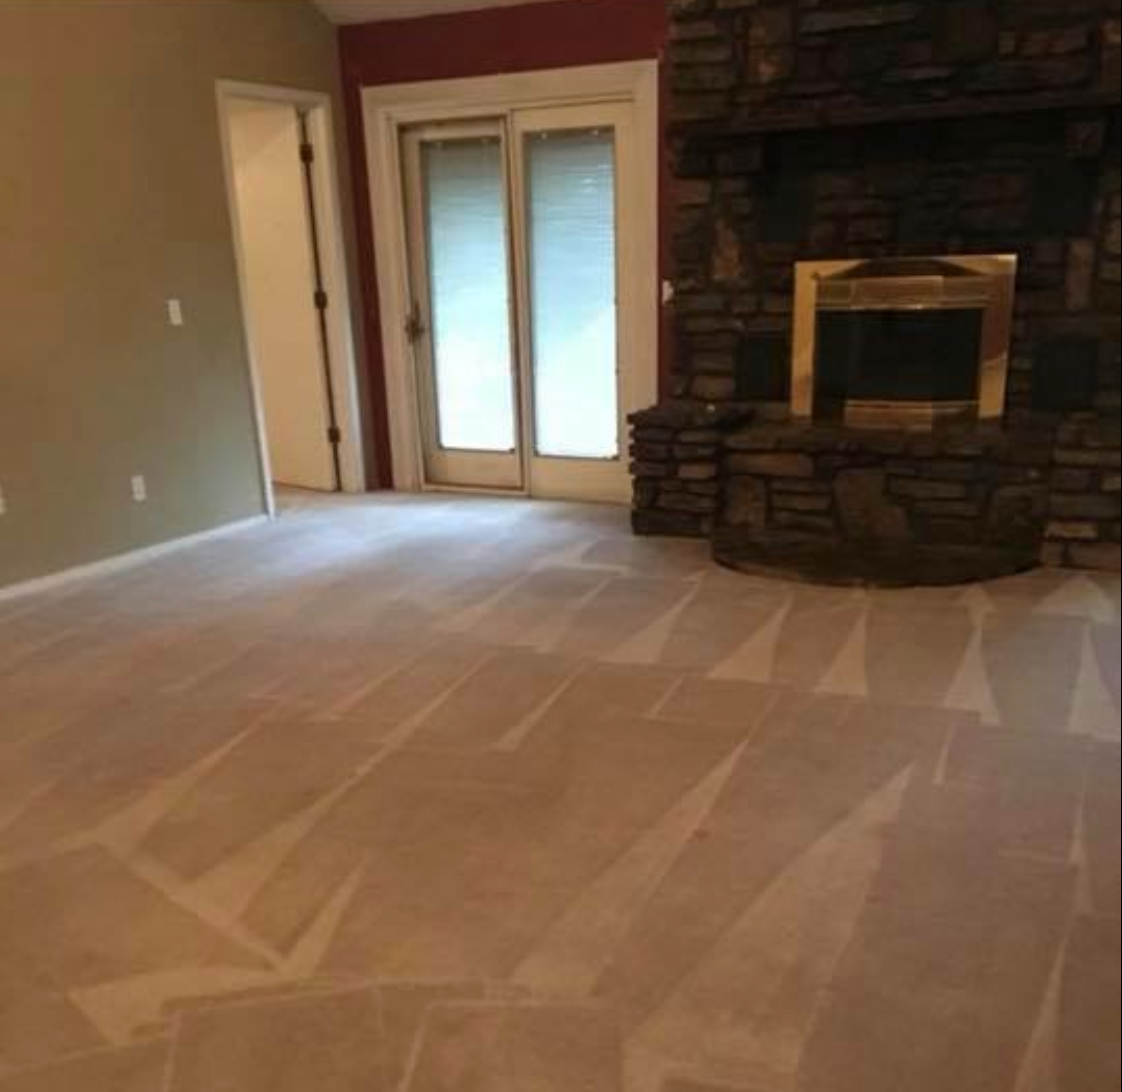 Cleaning Services Fayetteville Ar Steamers Carpet